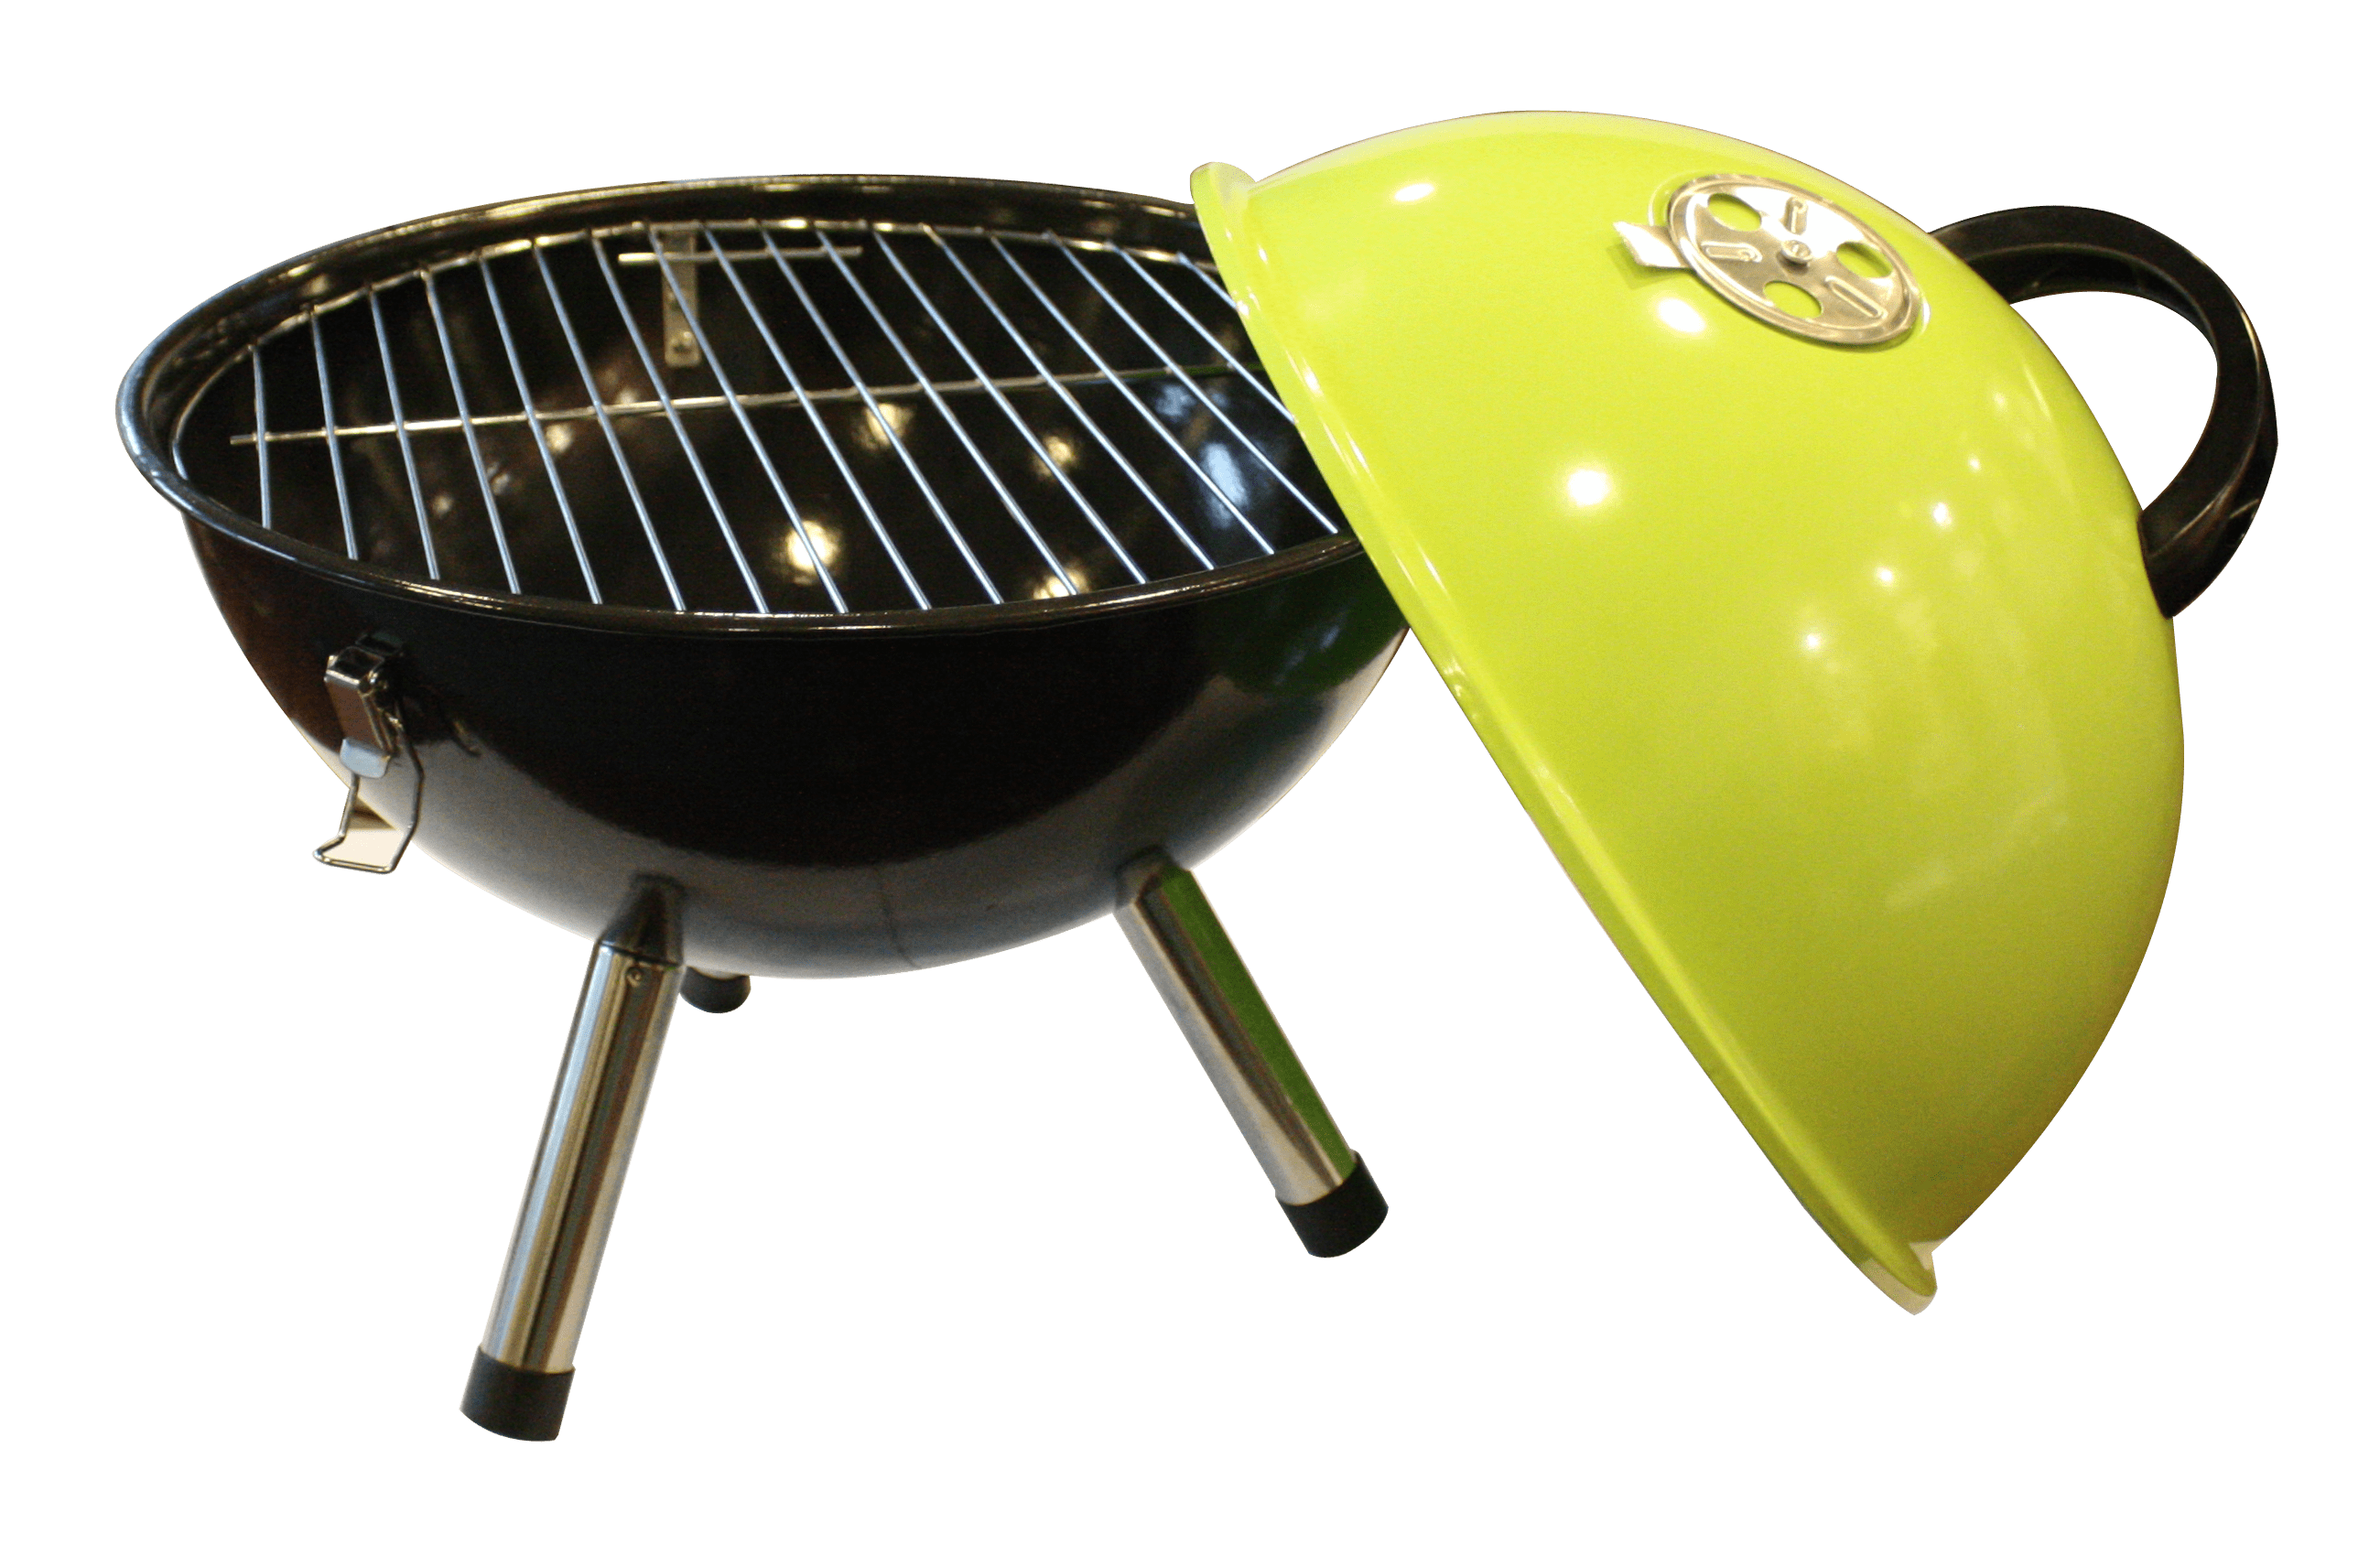 Grill clipart grill smoke. Smoking transparent png stickpng